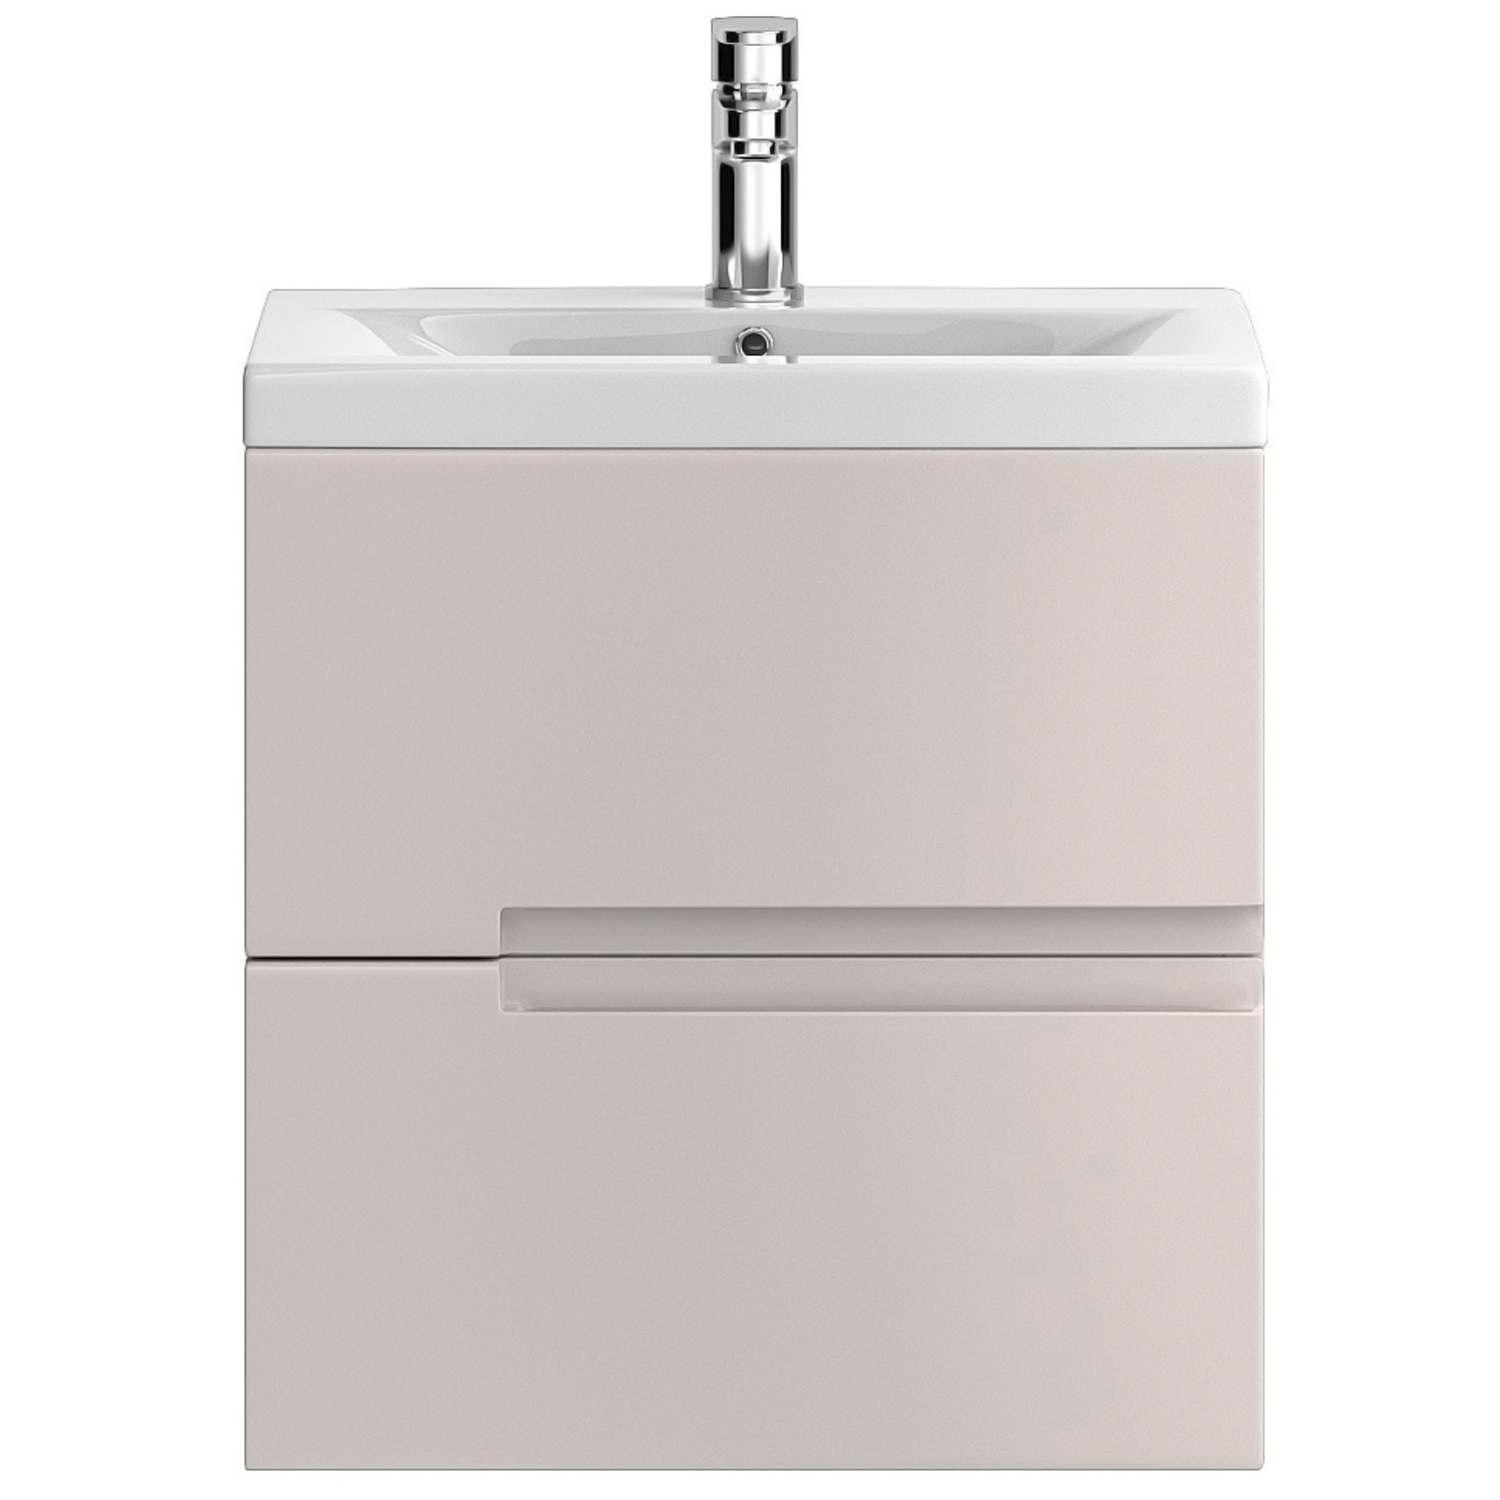 https://www.mepstock.co.uk/admin/images/Hudson-reed_urban_Cashmere_ Basin1_500mm_cabinet-URB714E.jpg